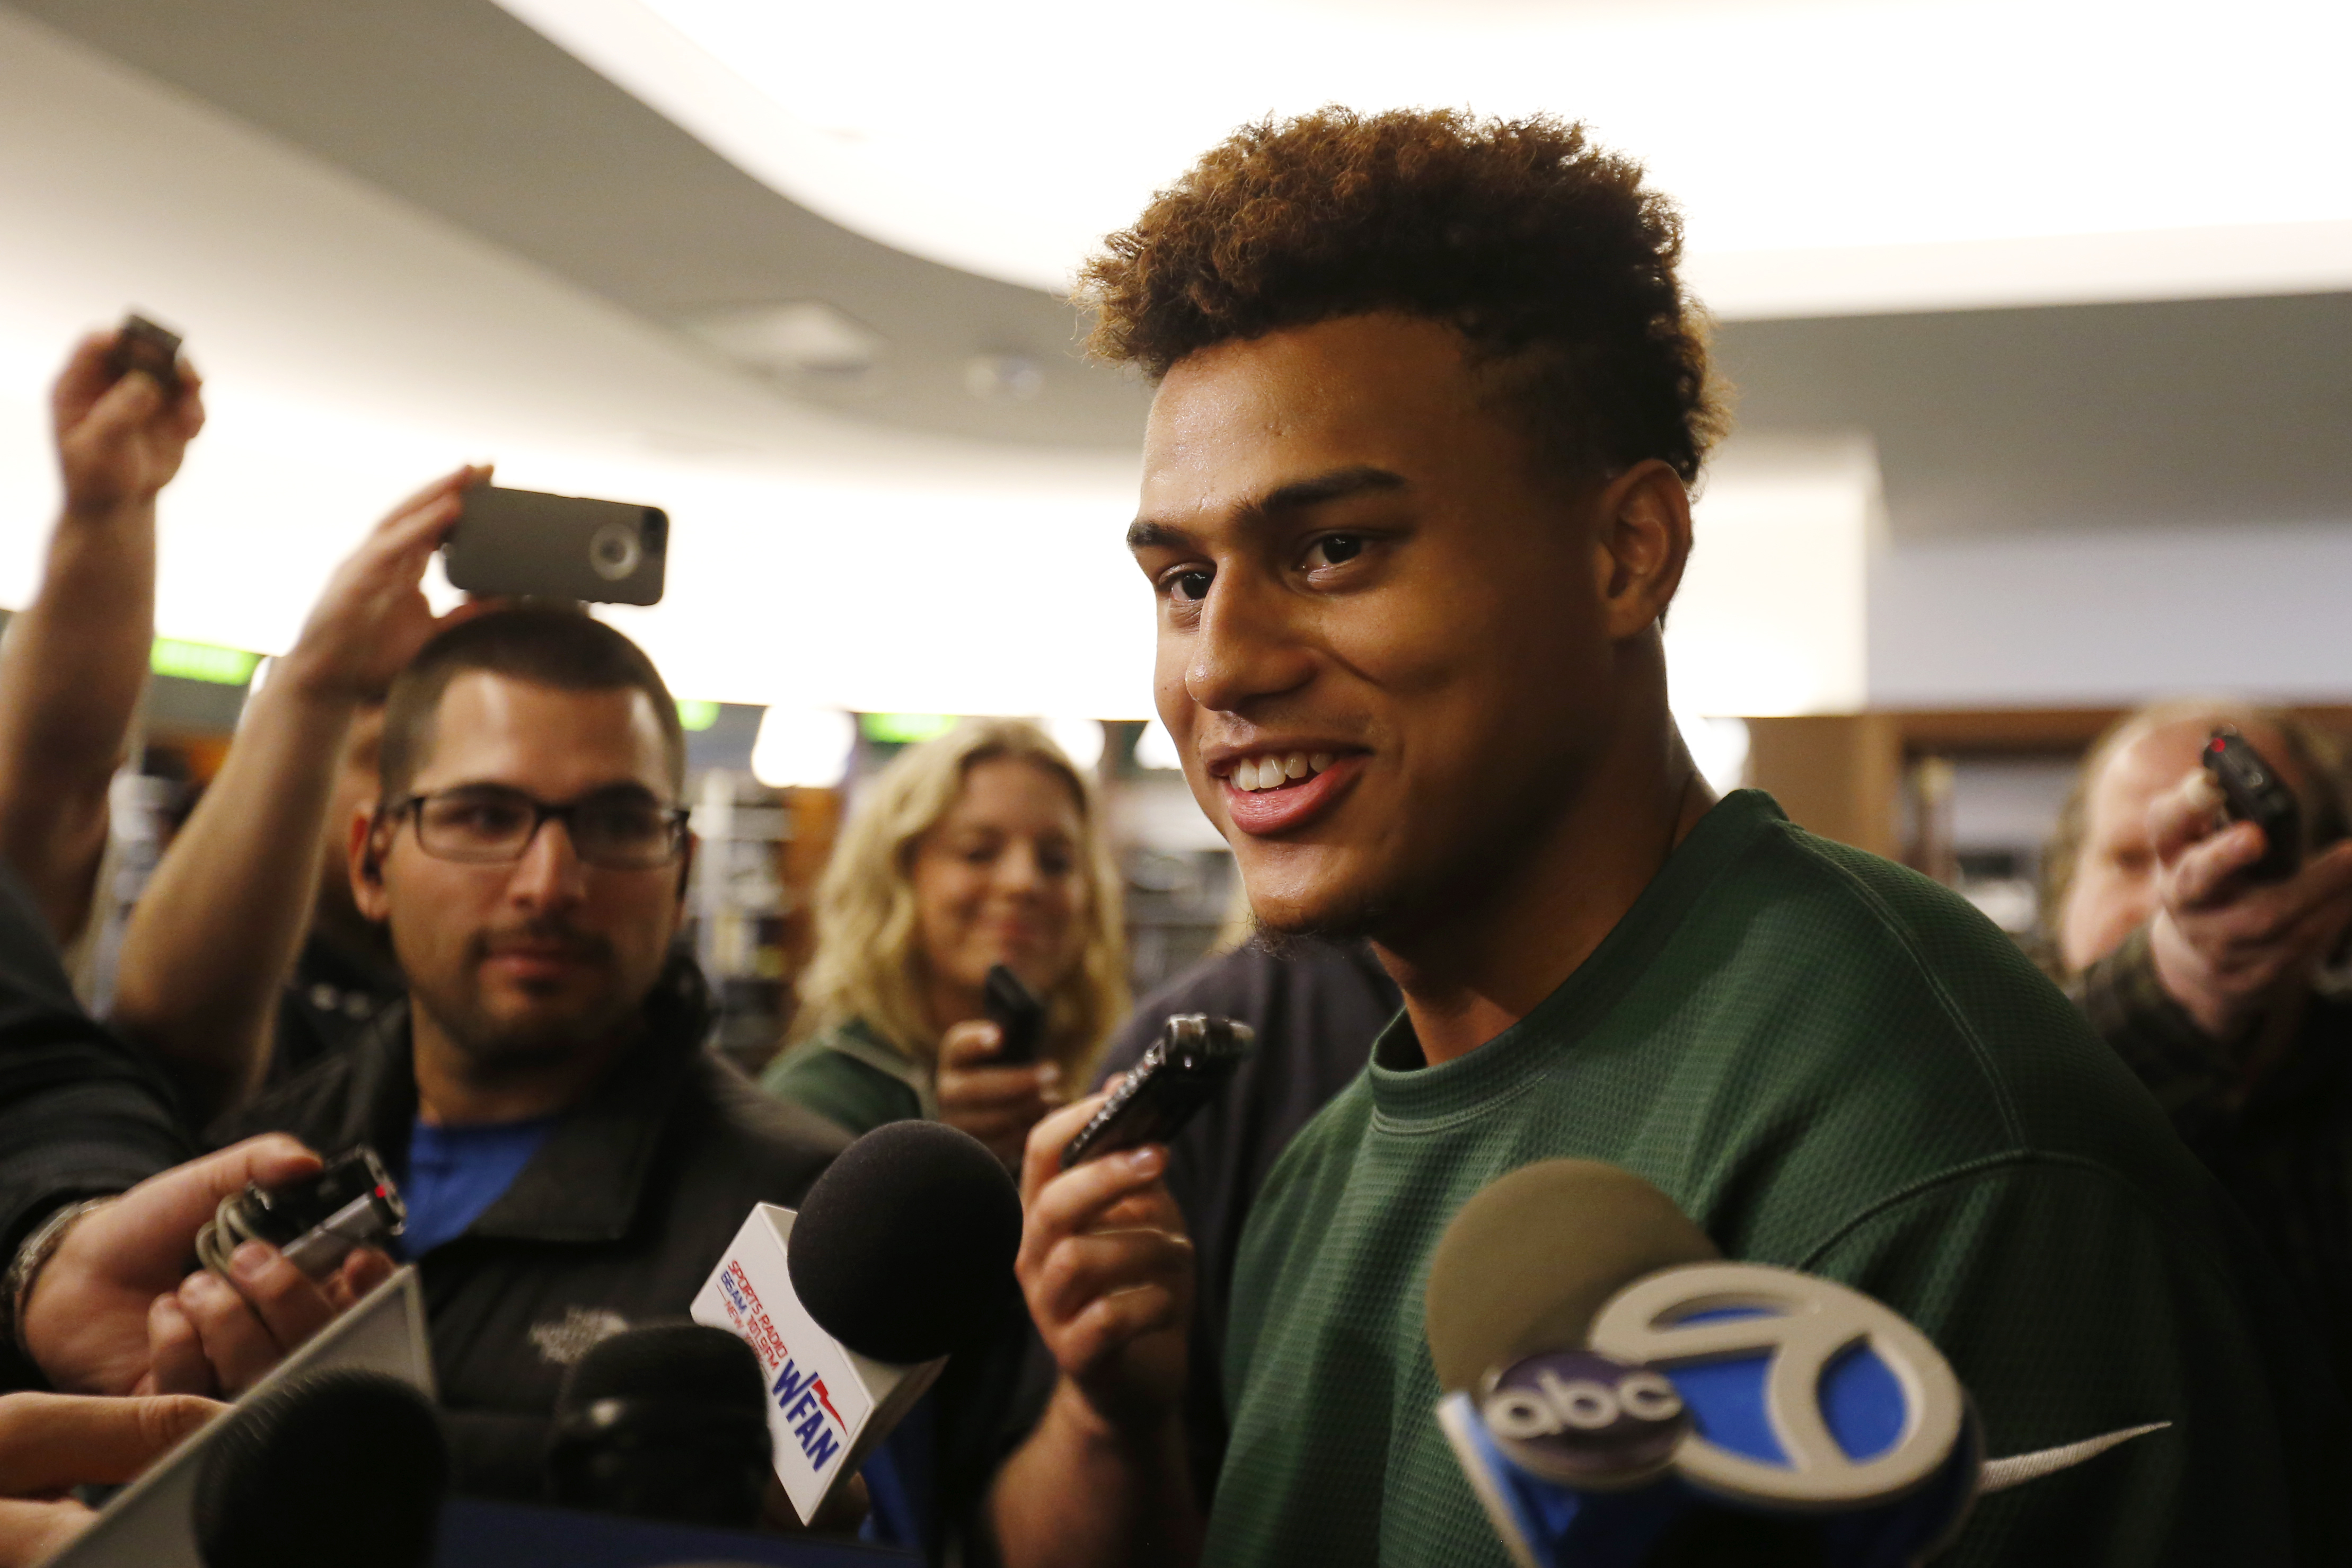 New York Jets cornerback Dexter McDougle speaks to reporters during an NFL football organized team activity, Wednesday, May 20, 2015, in Florham Park, N.J. (AP Photo/Julio Cortez)